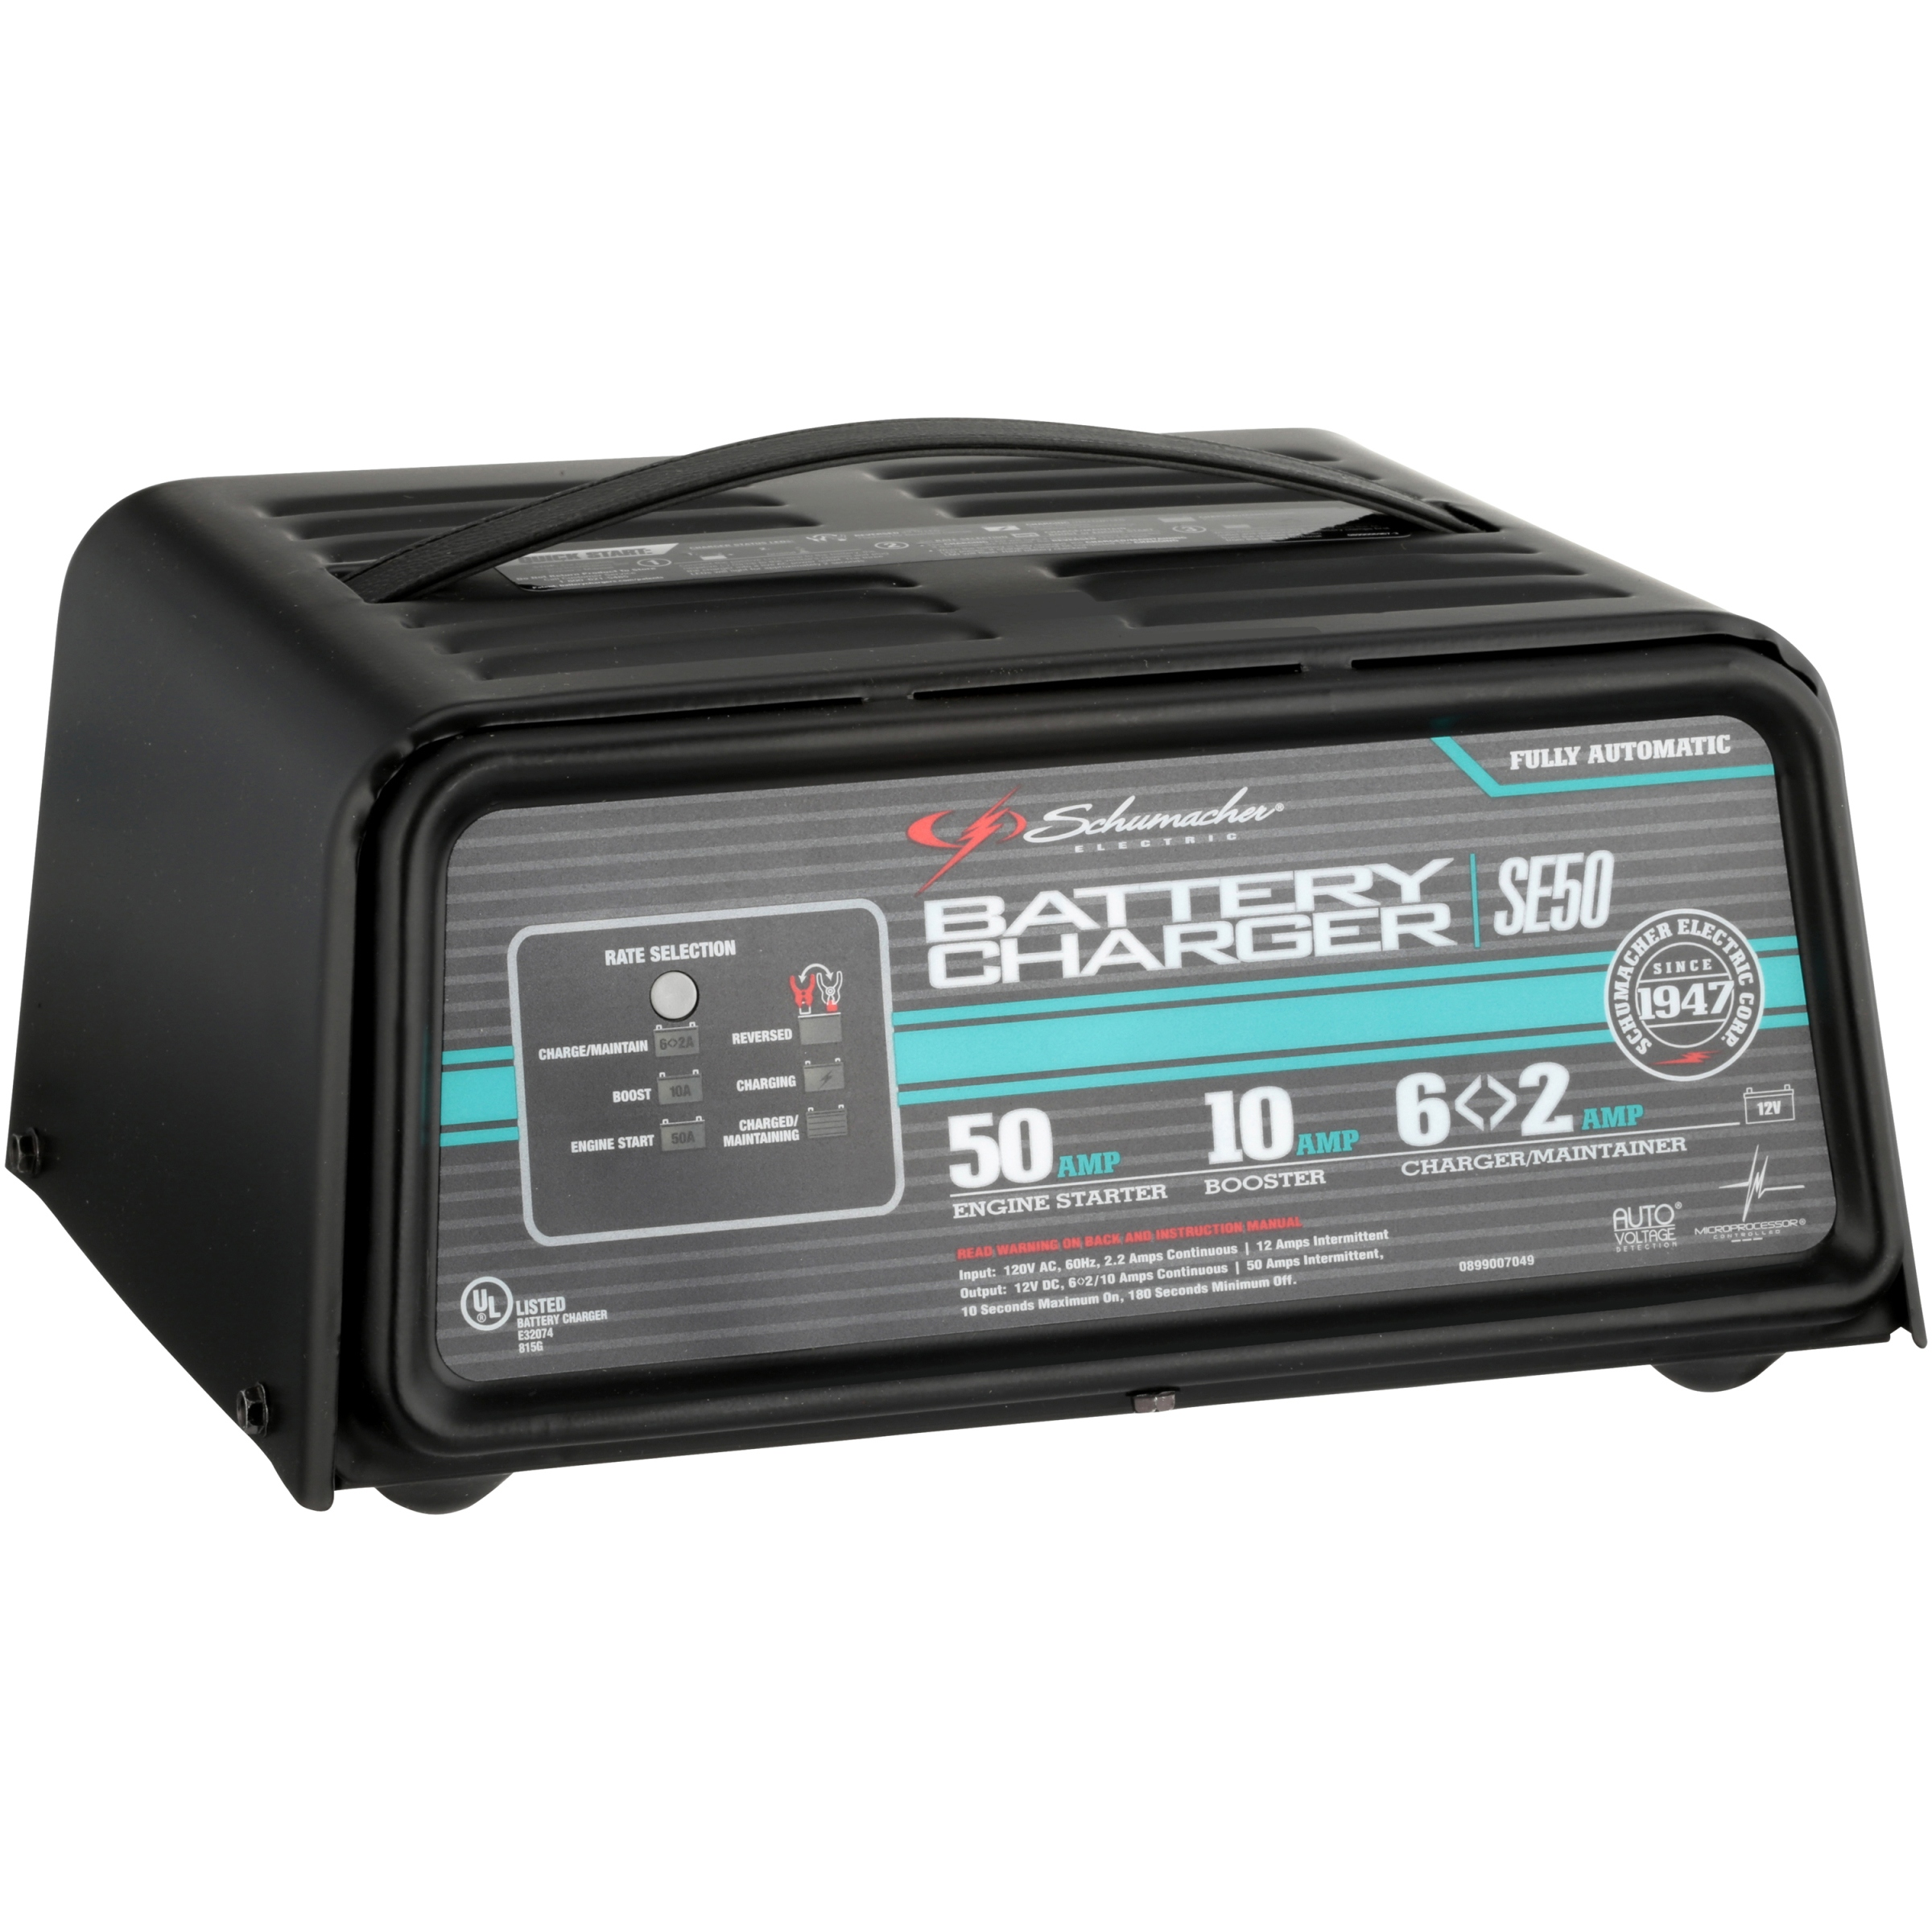 Schumacher® SE50 12V Fully Automatic Battery Charger